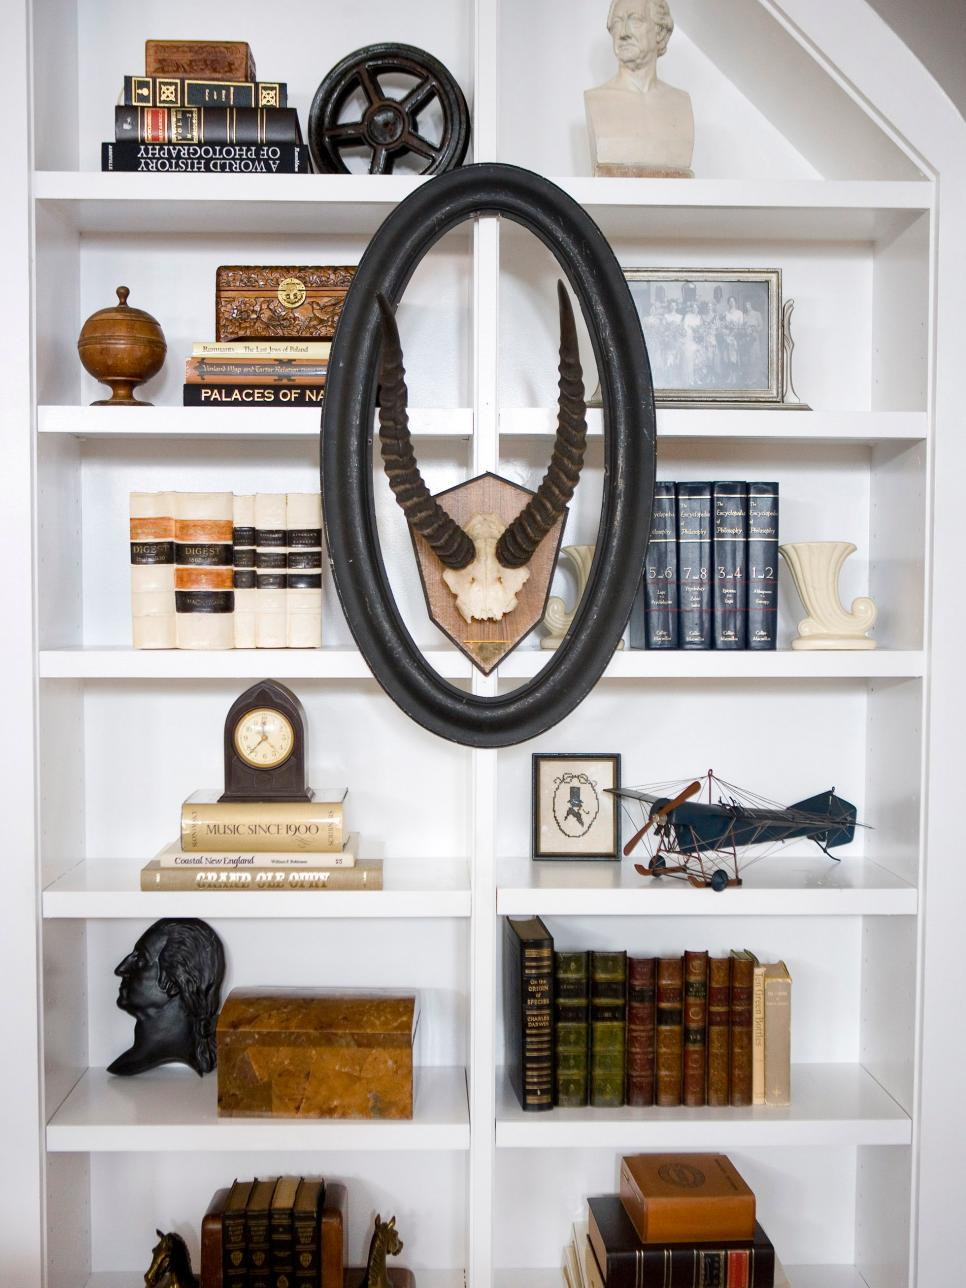 Bookshelf and wall shelf decorating ideas hgtv Shelves design ideas